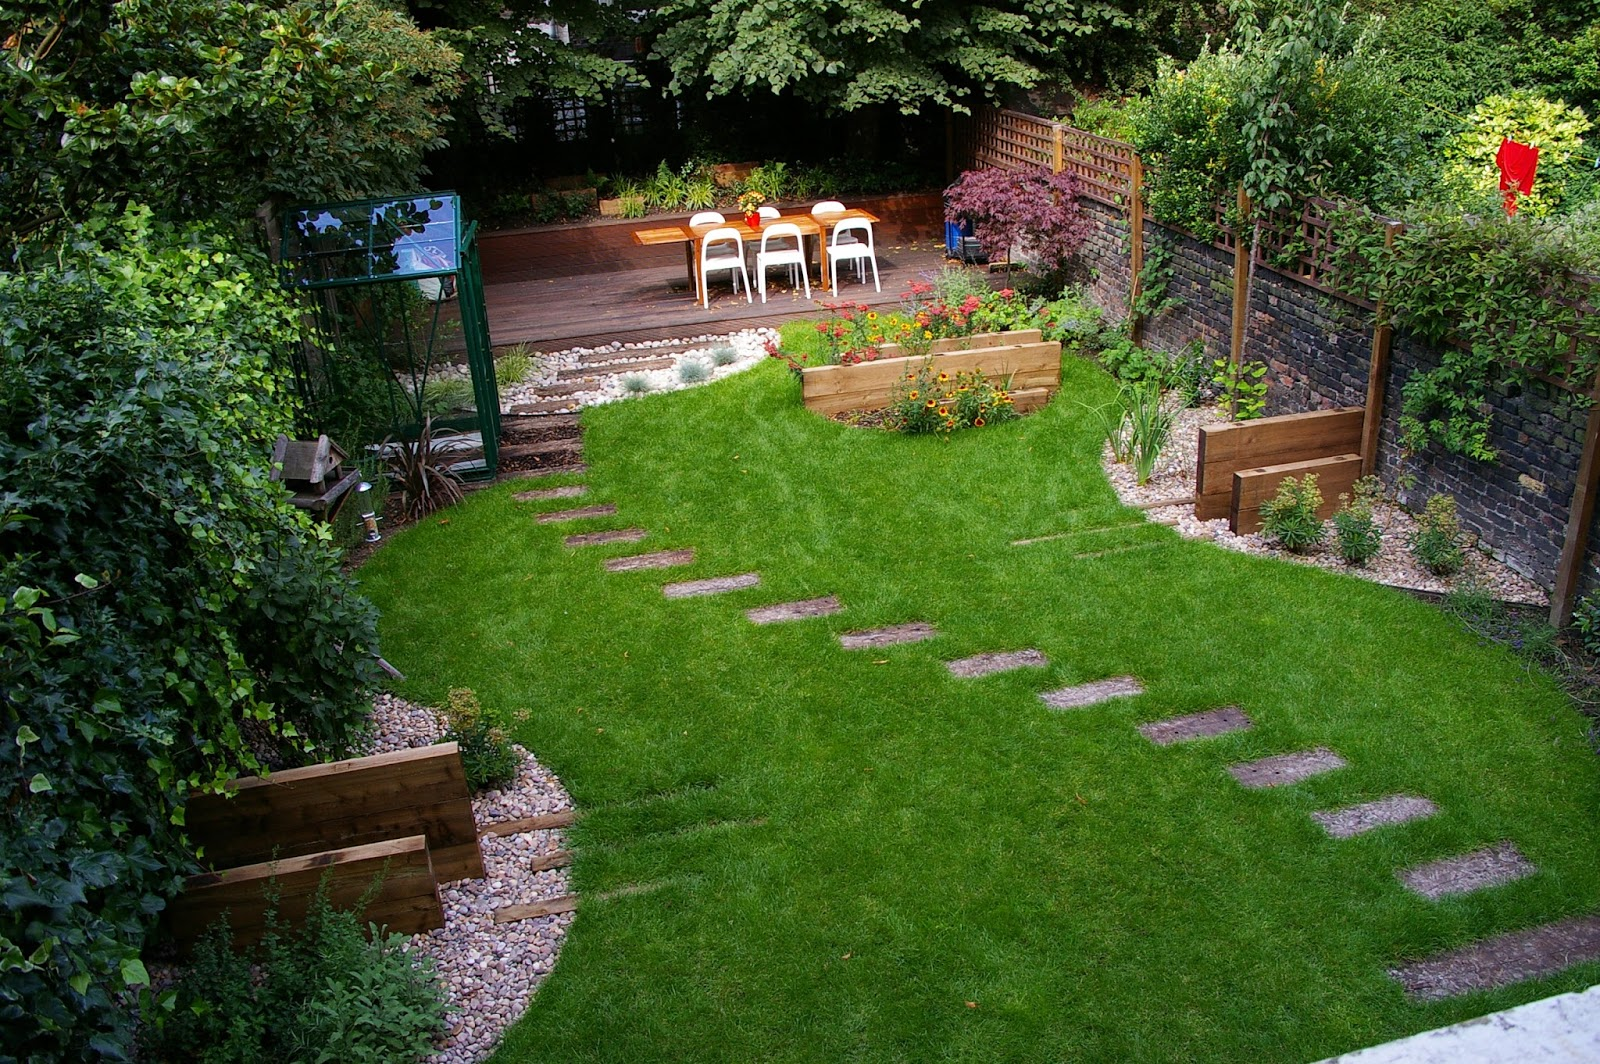 Small Landscaping Ideas for Backyard Designs for Privacy on Backyard Landscaping Ideas On A Budget id=30559